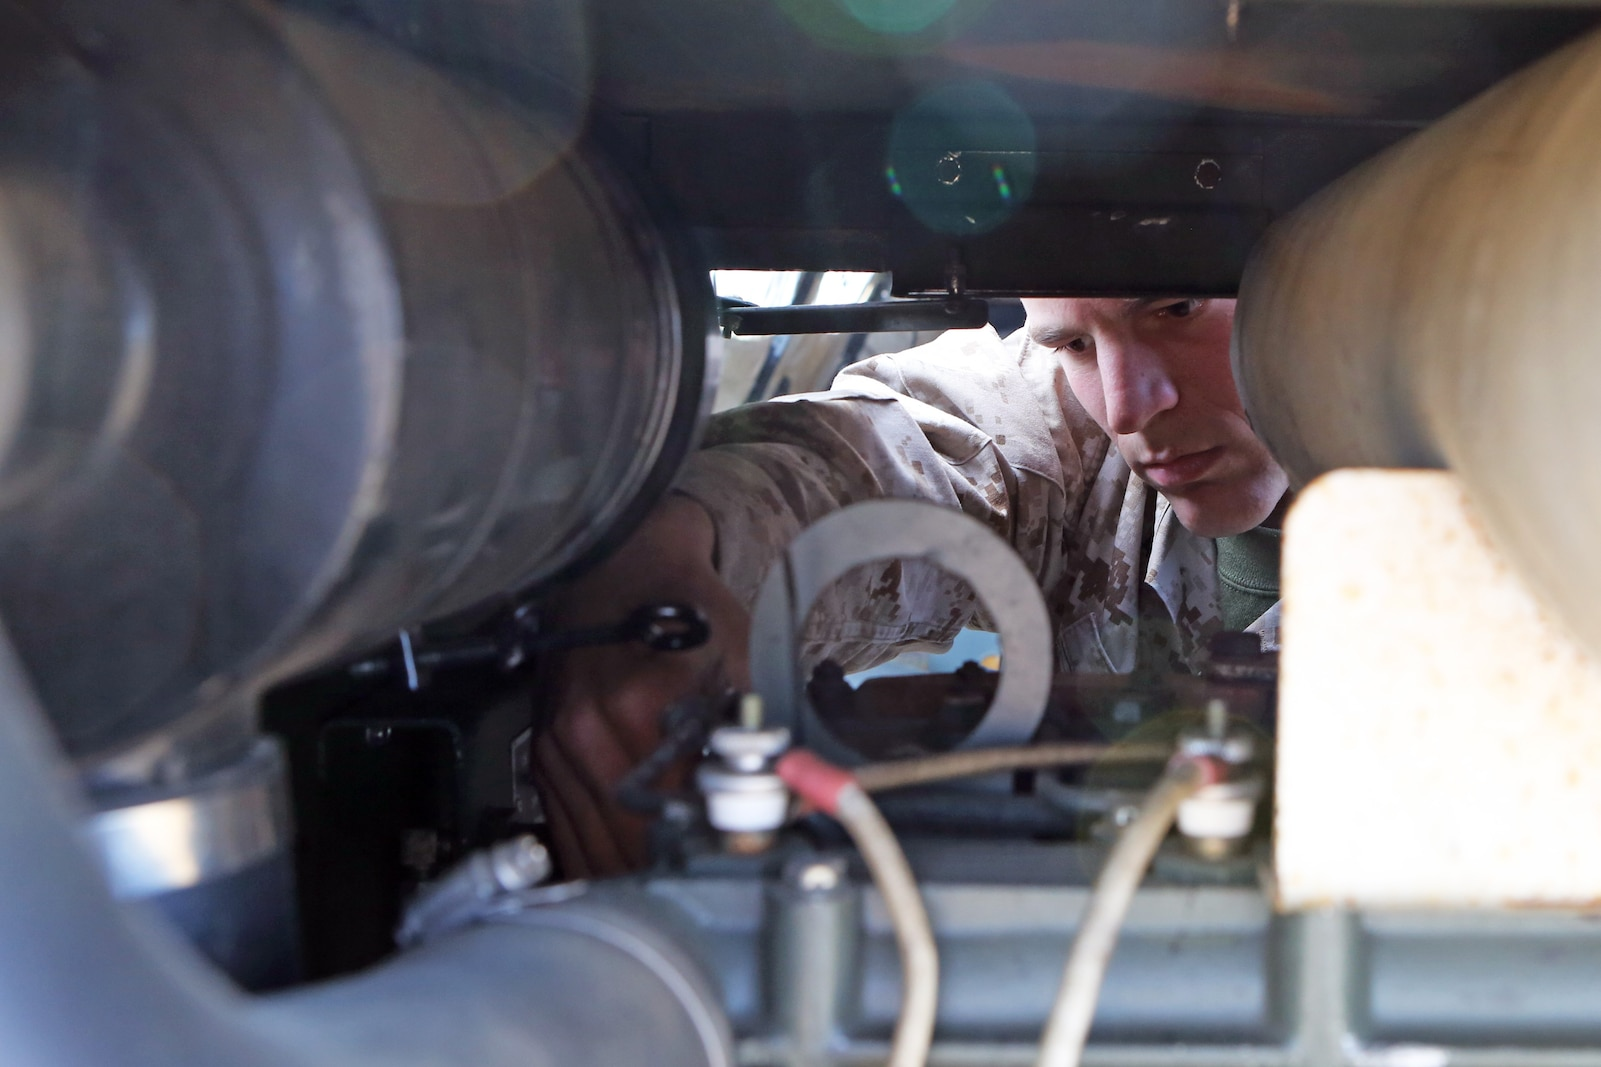 Sergeant Andrew Heins, a 22-year-old maintenance mechanic, Maintenance Detachment, Combat Logistics Battalion 15, 1st Marine Logistics Group repairs a generator during the battalion's first field training exercise of the year at Red Beach  aboard Camp Pendleton, Calif., May 6-10, in preparation for pre-deployment training with the 15th Marine Expeditionary Unit this fall. The exercise allowed CLB-15 to practice procedures and protocols they will apply while acting the 15th MEU's primary logistical support element during its deployment early next year. Providing this support to the MEU allows it to focus on its chief objective as a crisis response force, ready to respond to disaster or humanitarian relief operations.